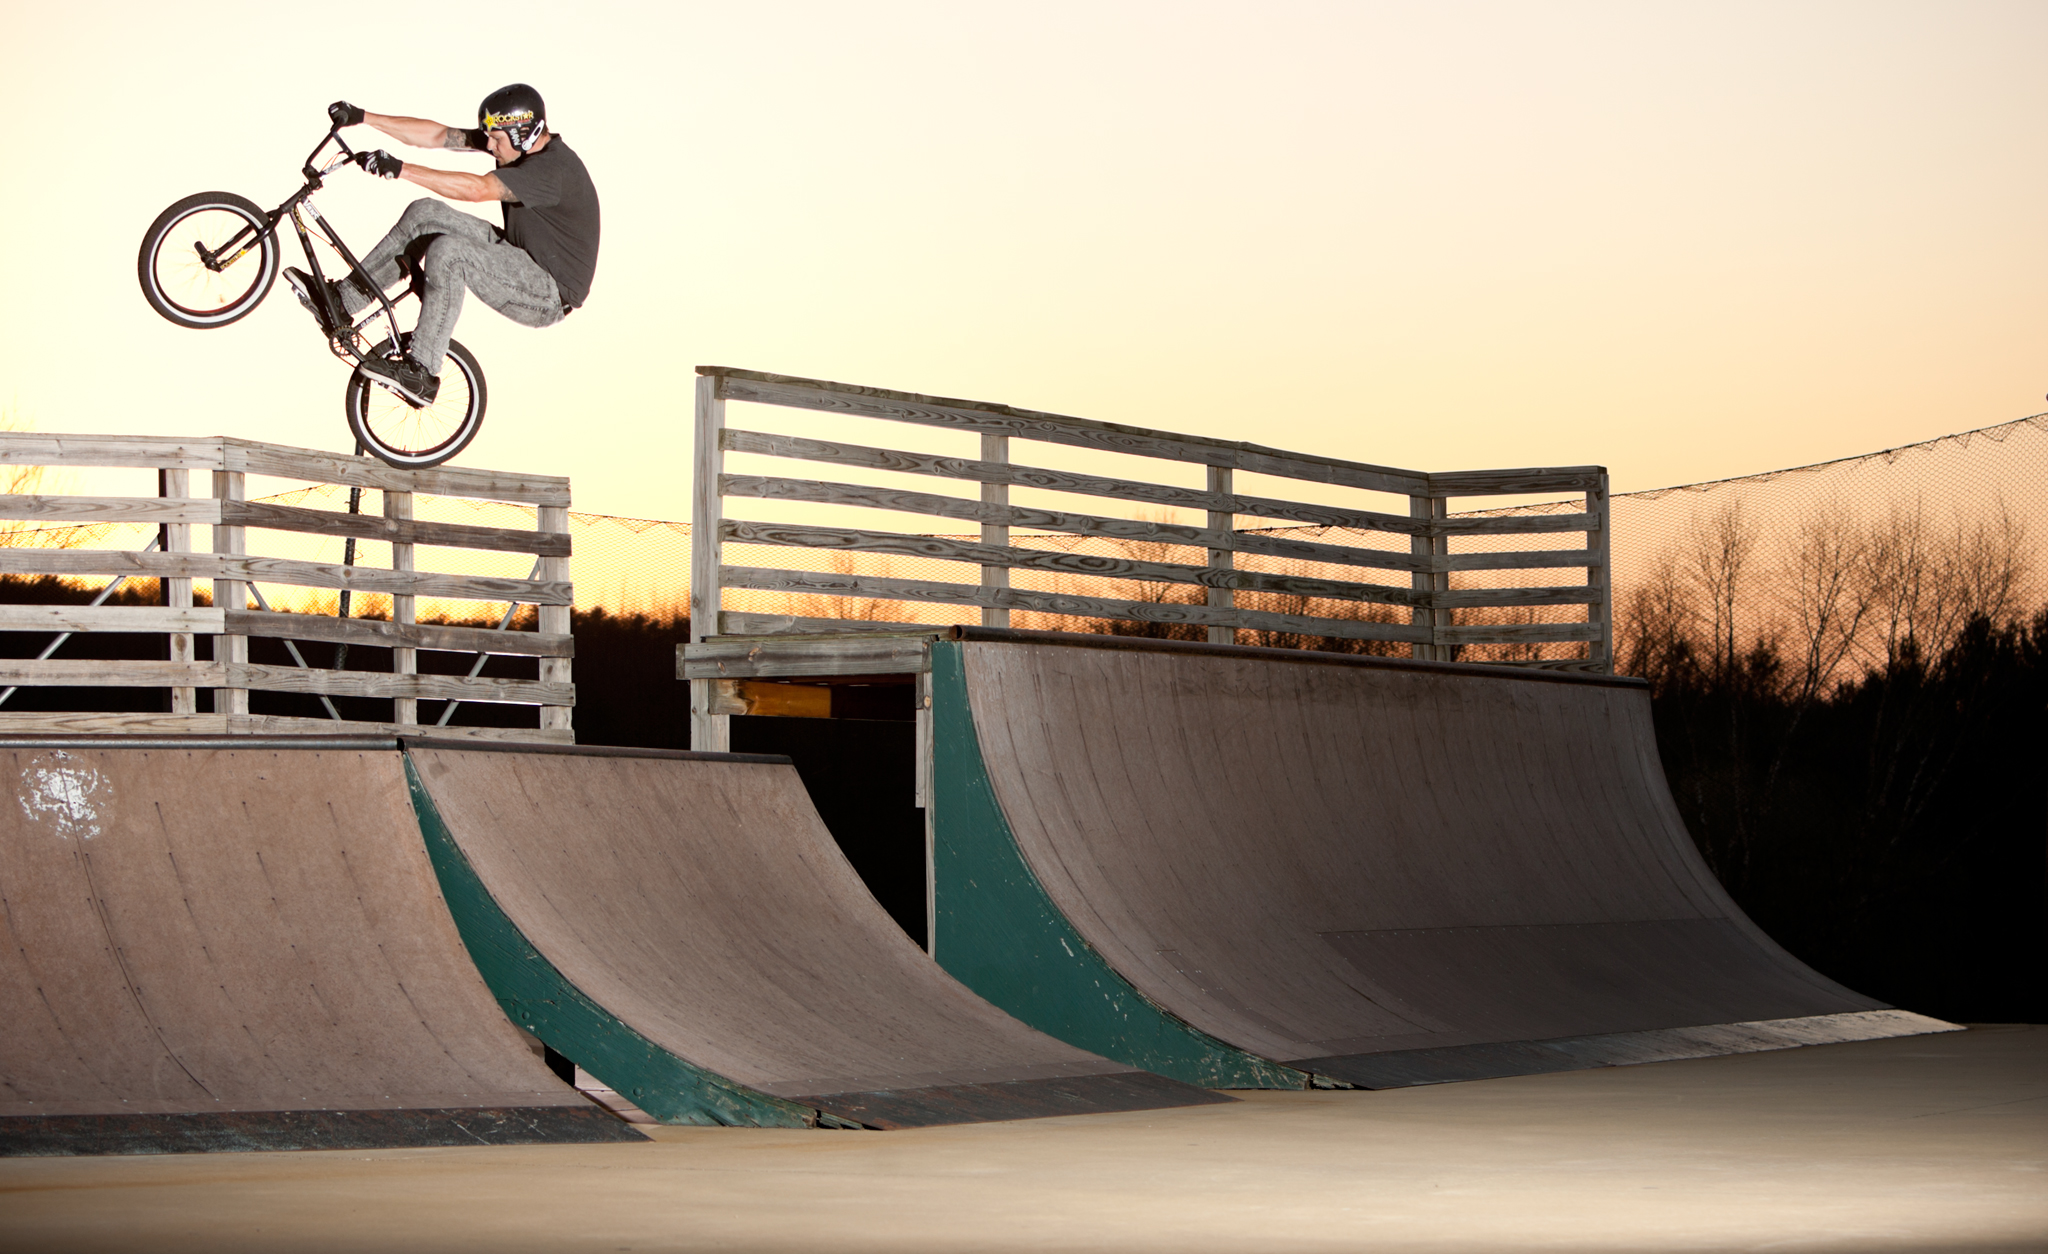 /photo/2012/1227/as_bmx_cody4_2048.jpg